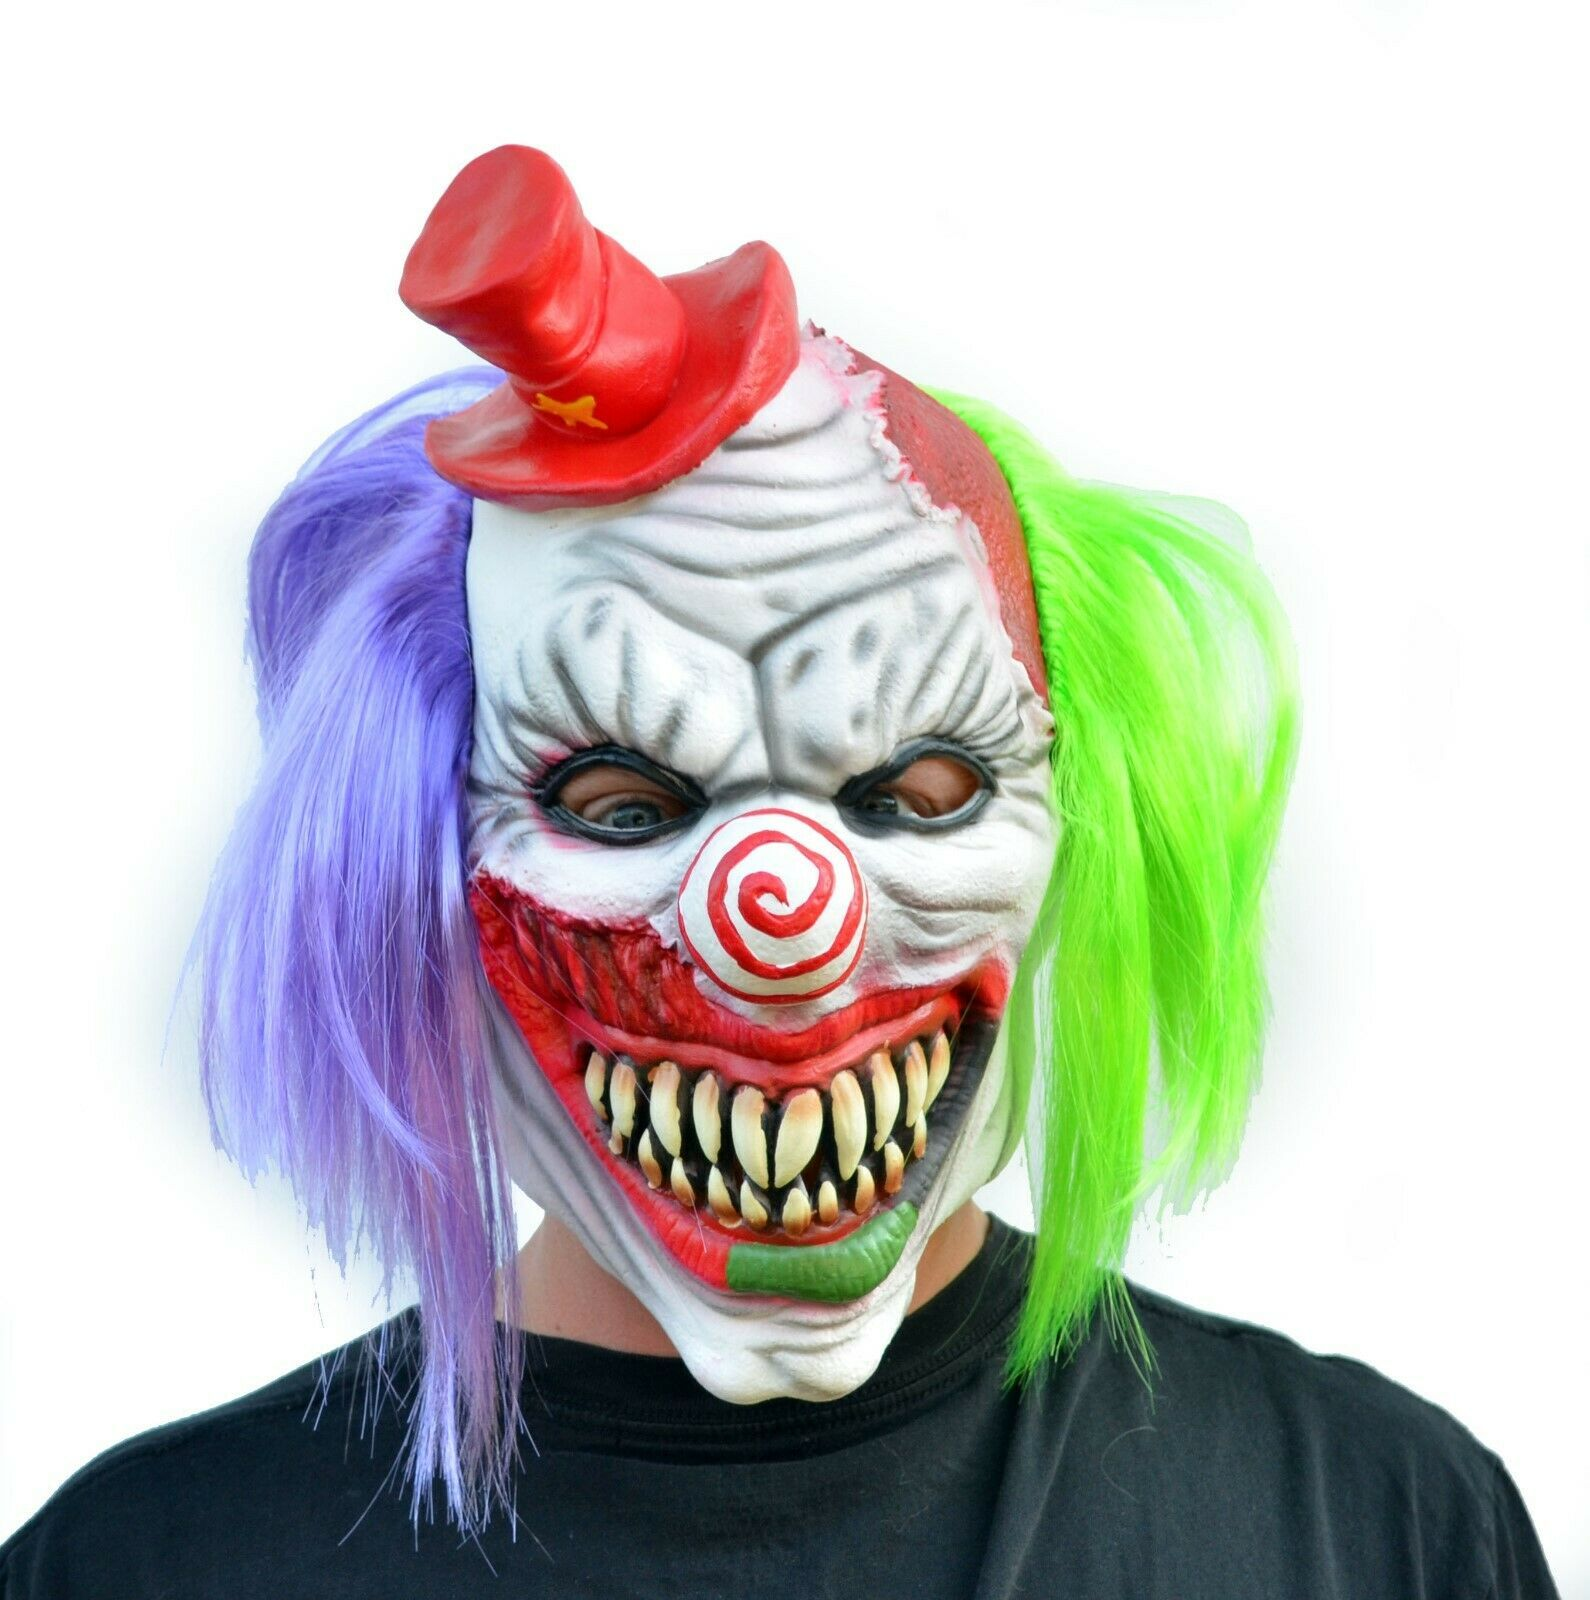 Evil Halloween Clown Mask Costume Party Mask with Hair Killer Psycho the Clown